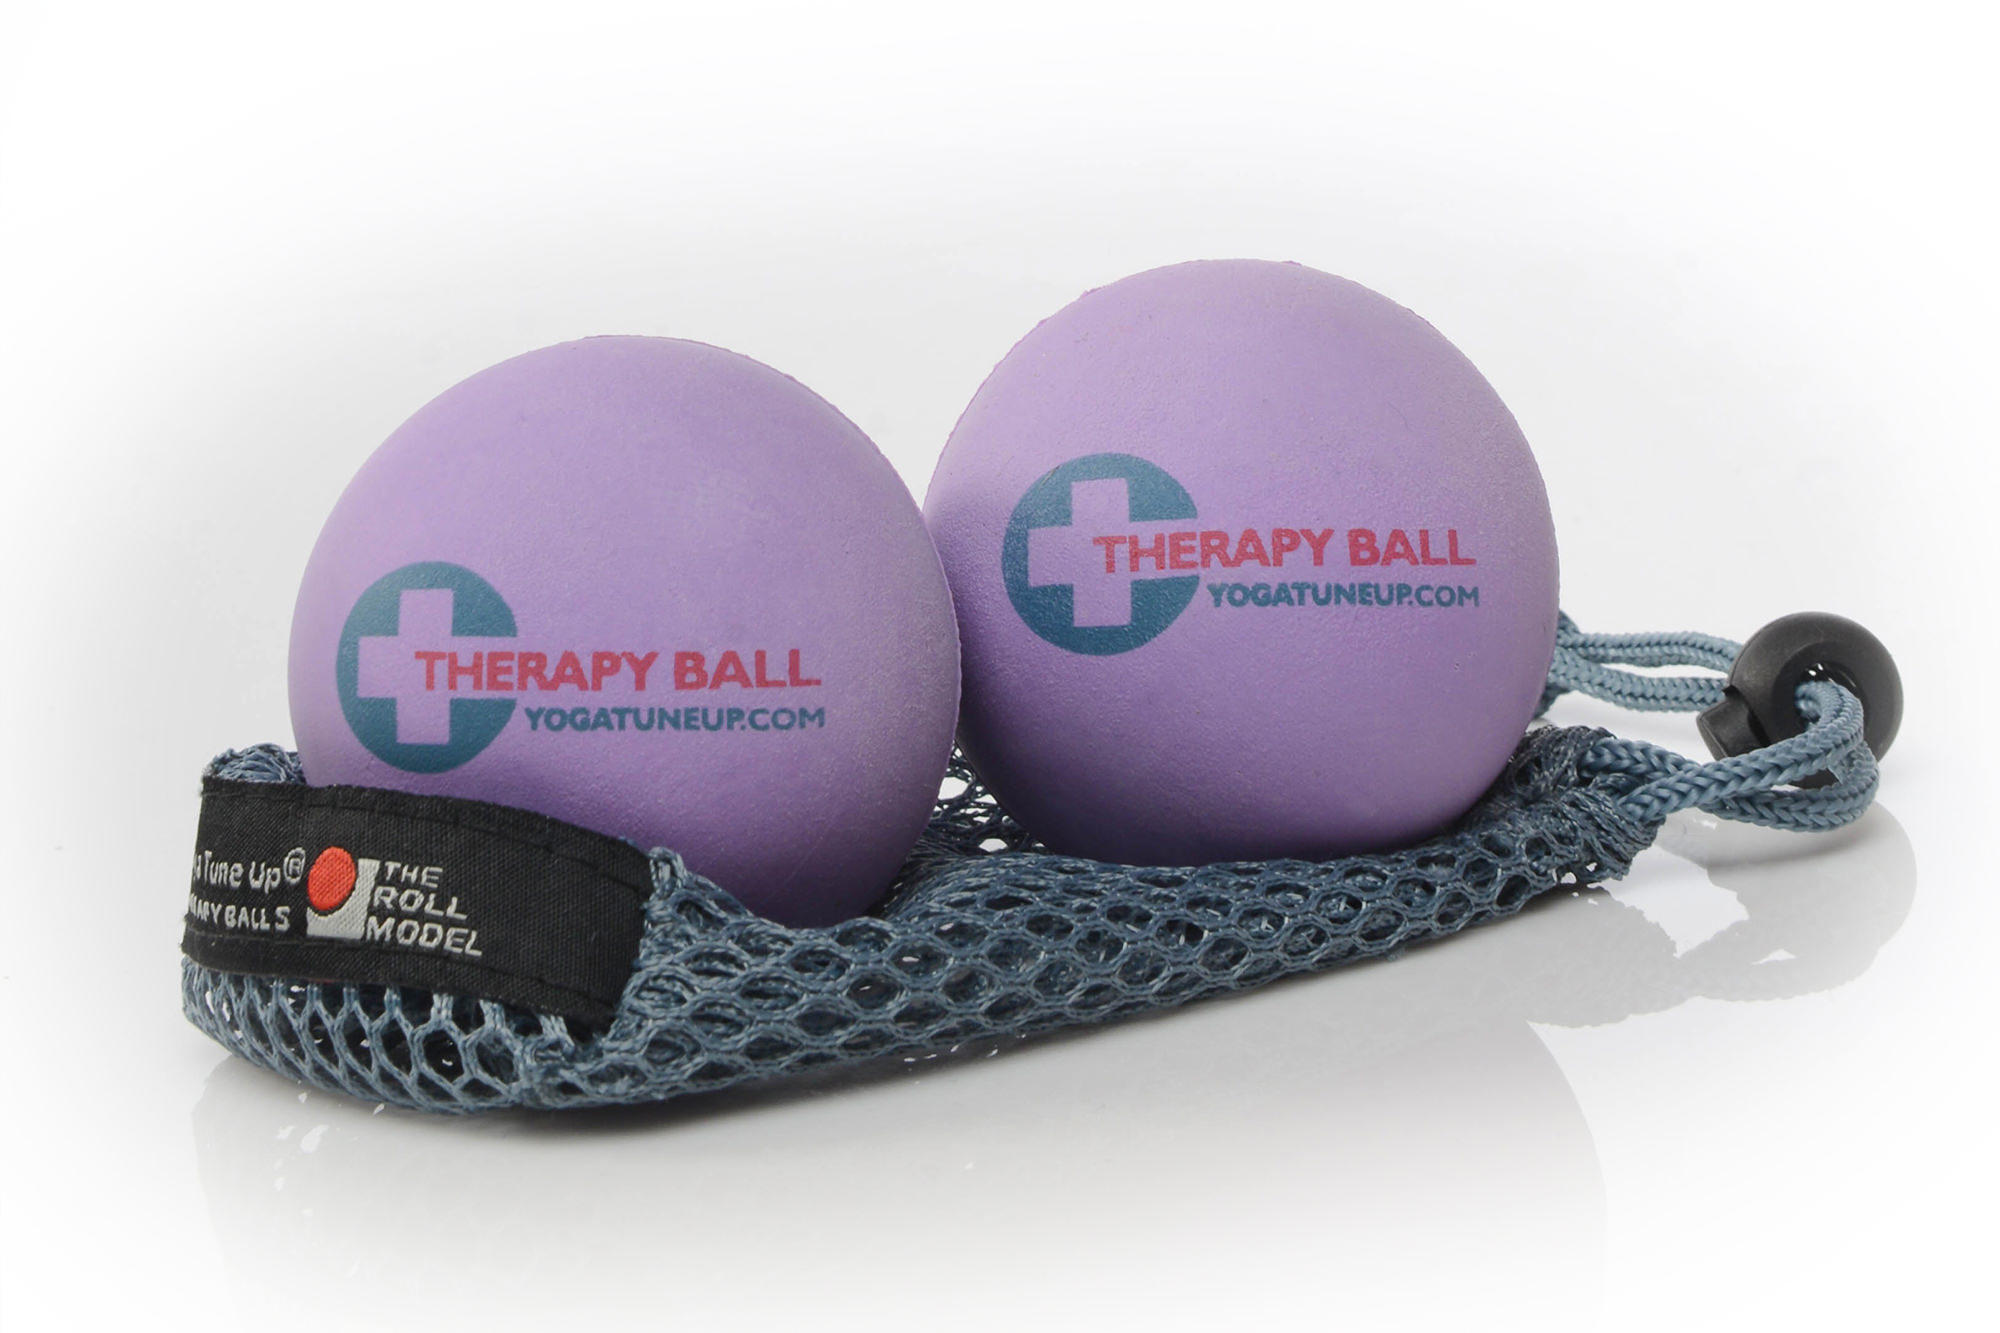 Yoga Tune Up Balls $19.99 + tax